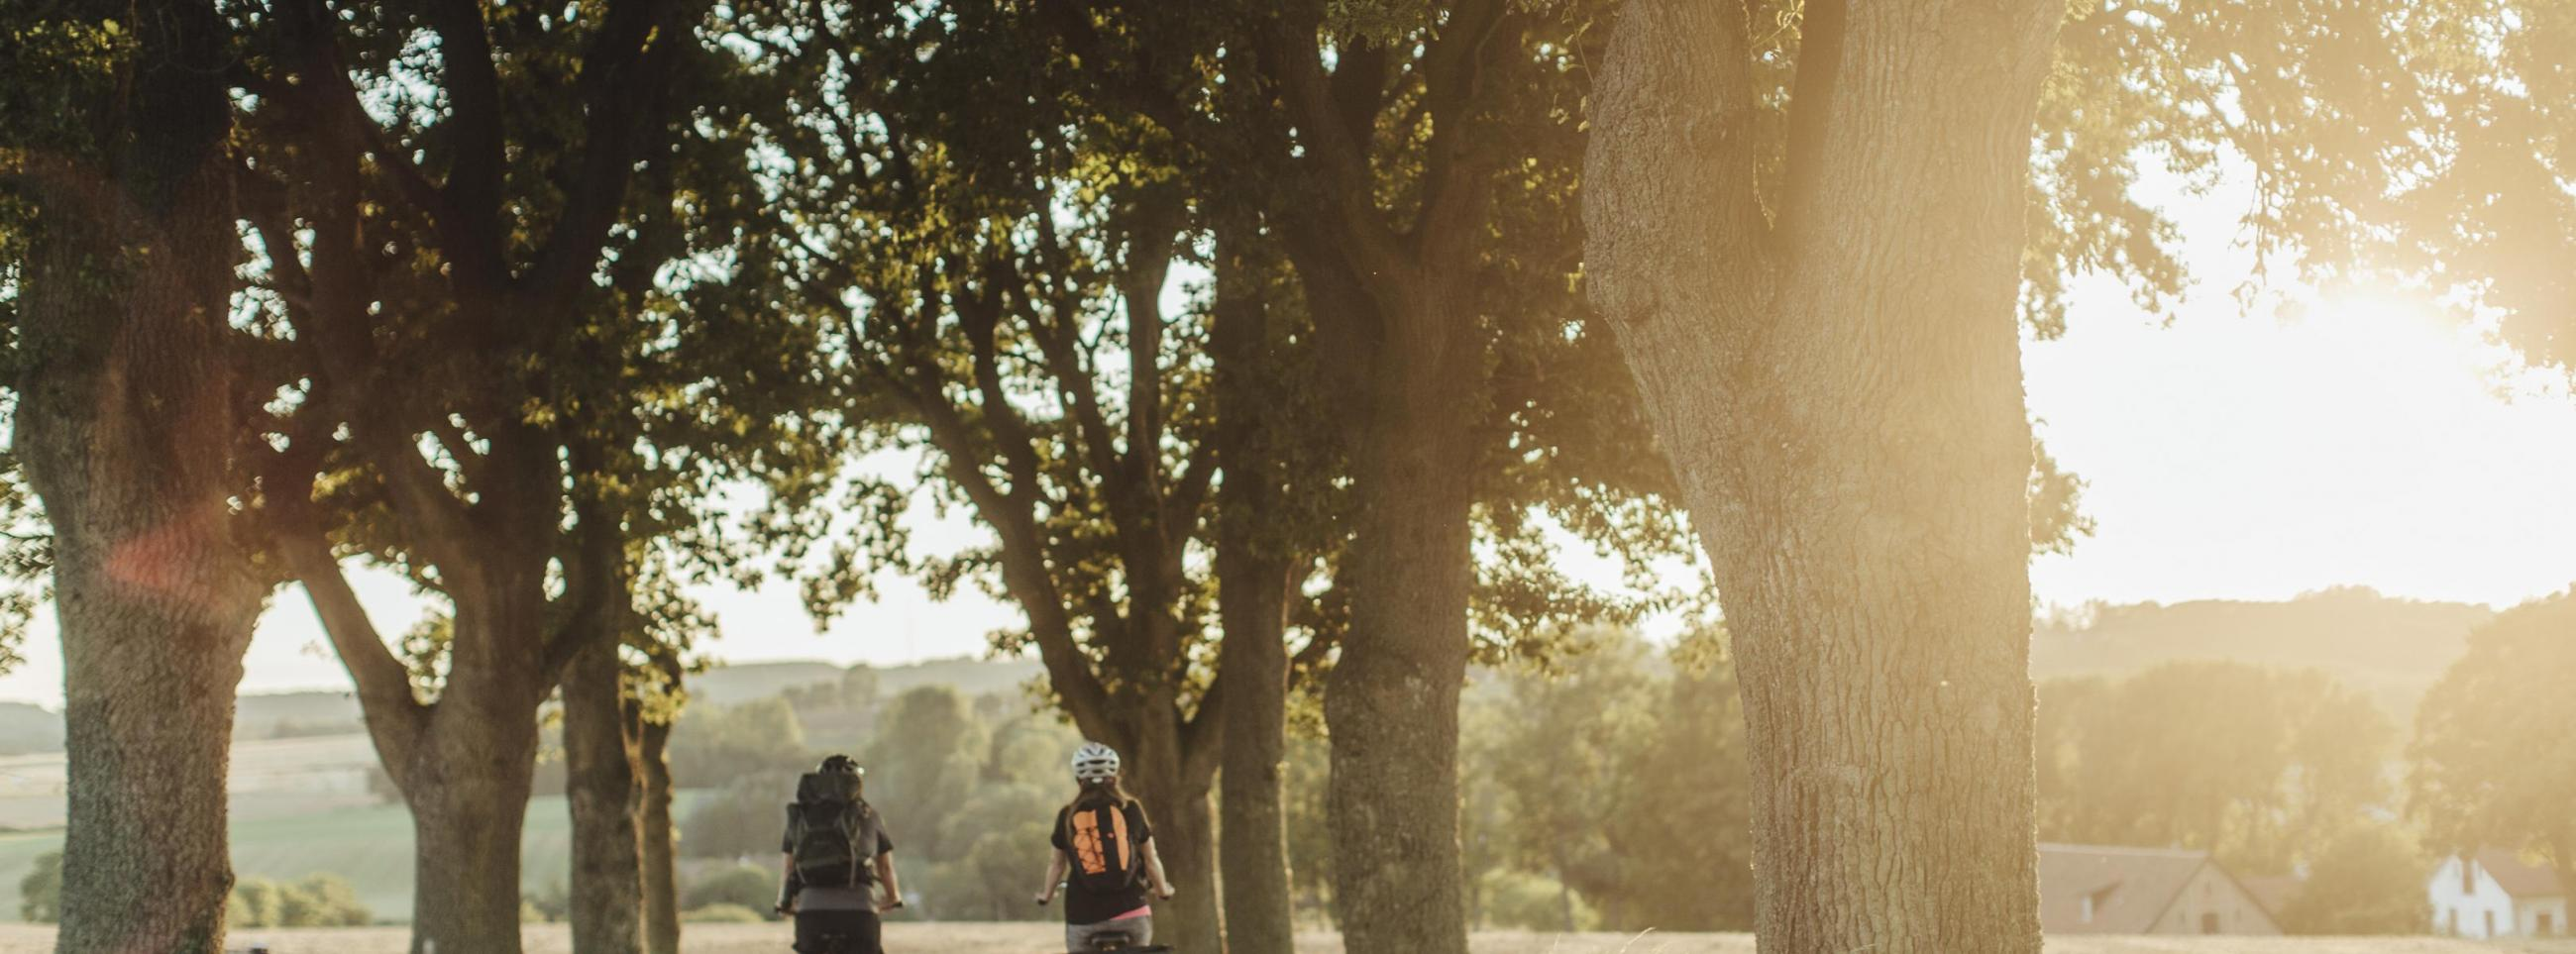 Biking on Sydostleden